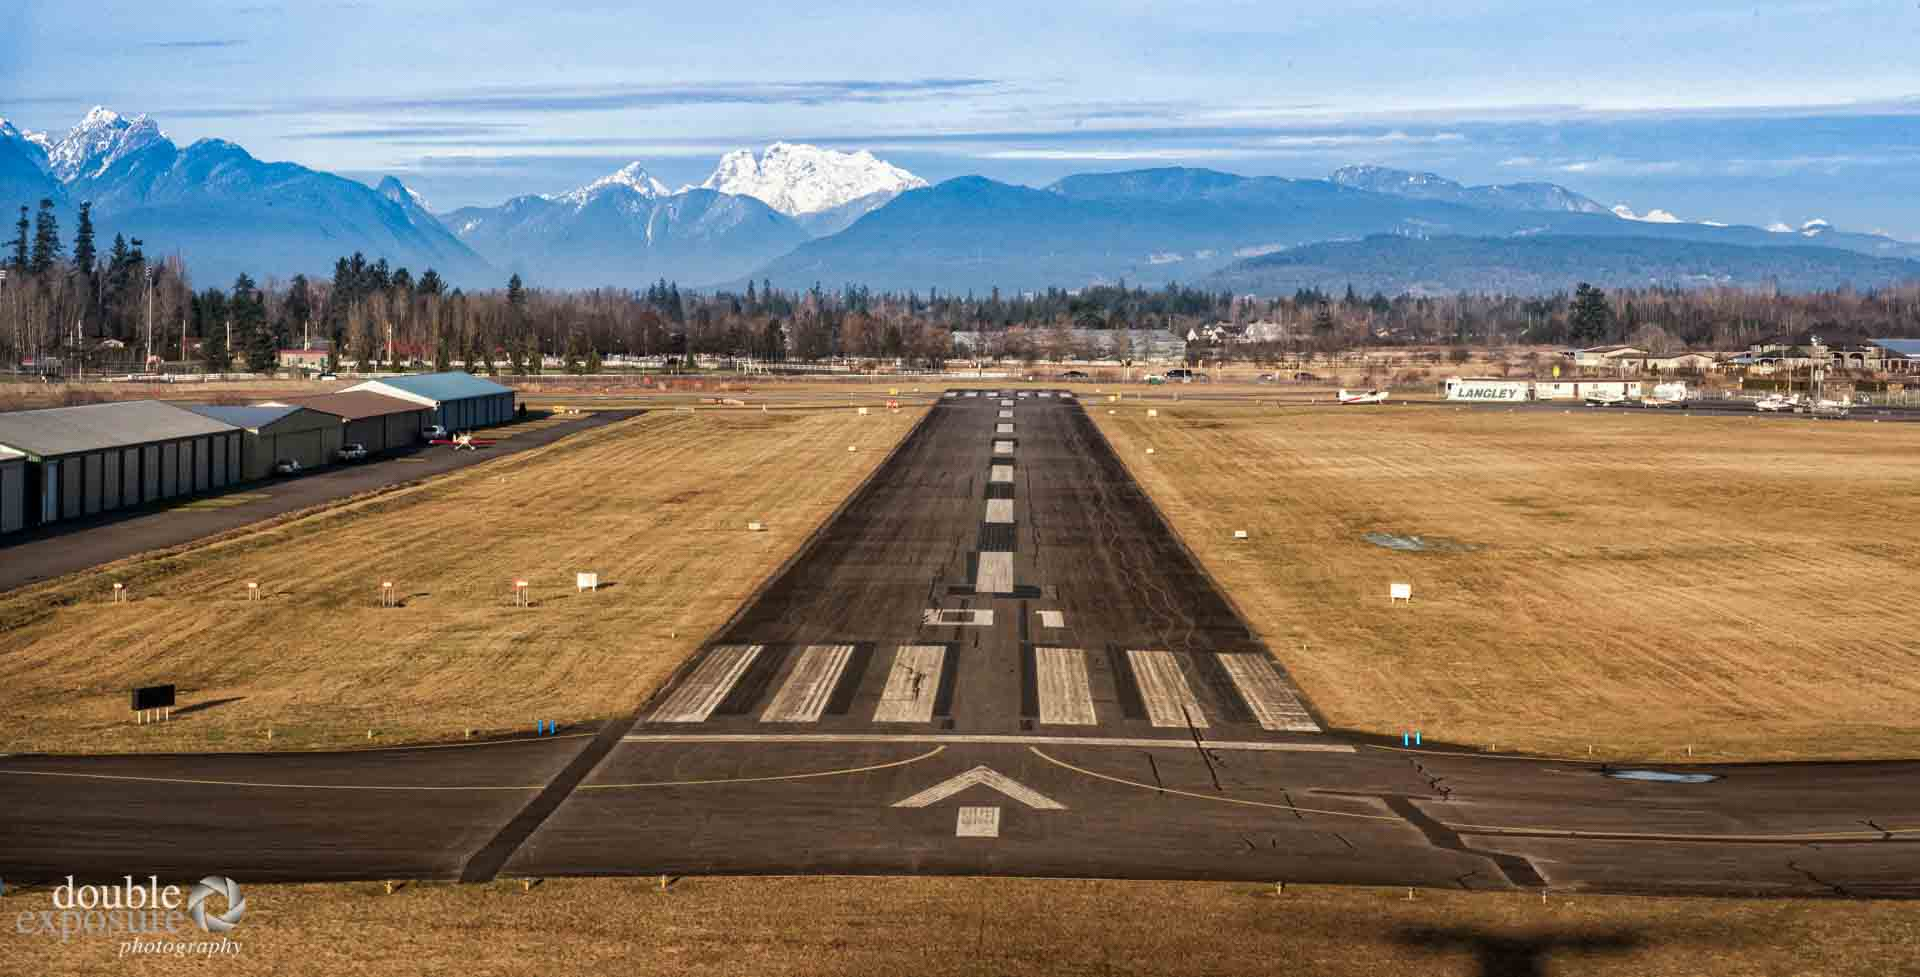 approaching the runway at Langley airport.